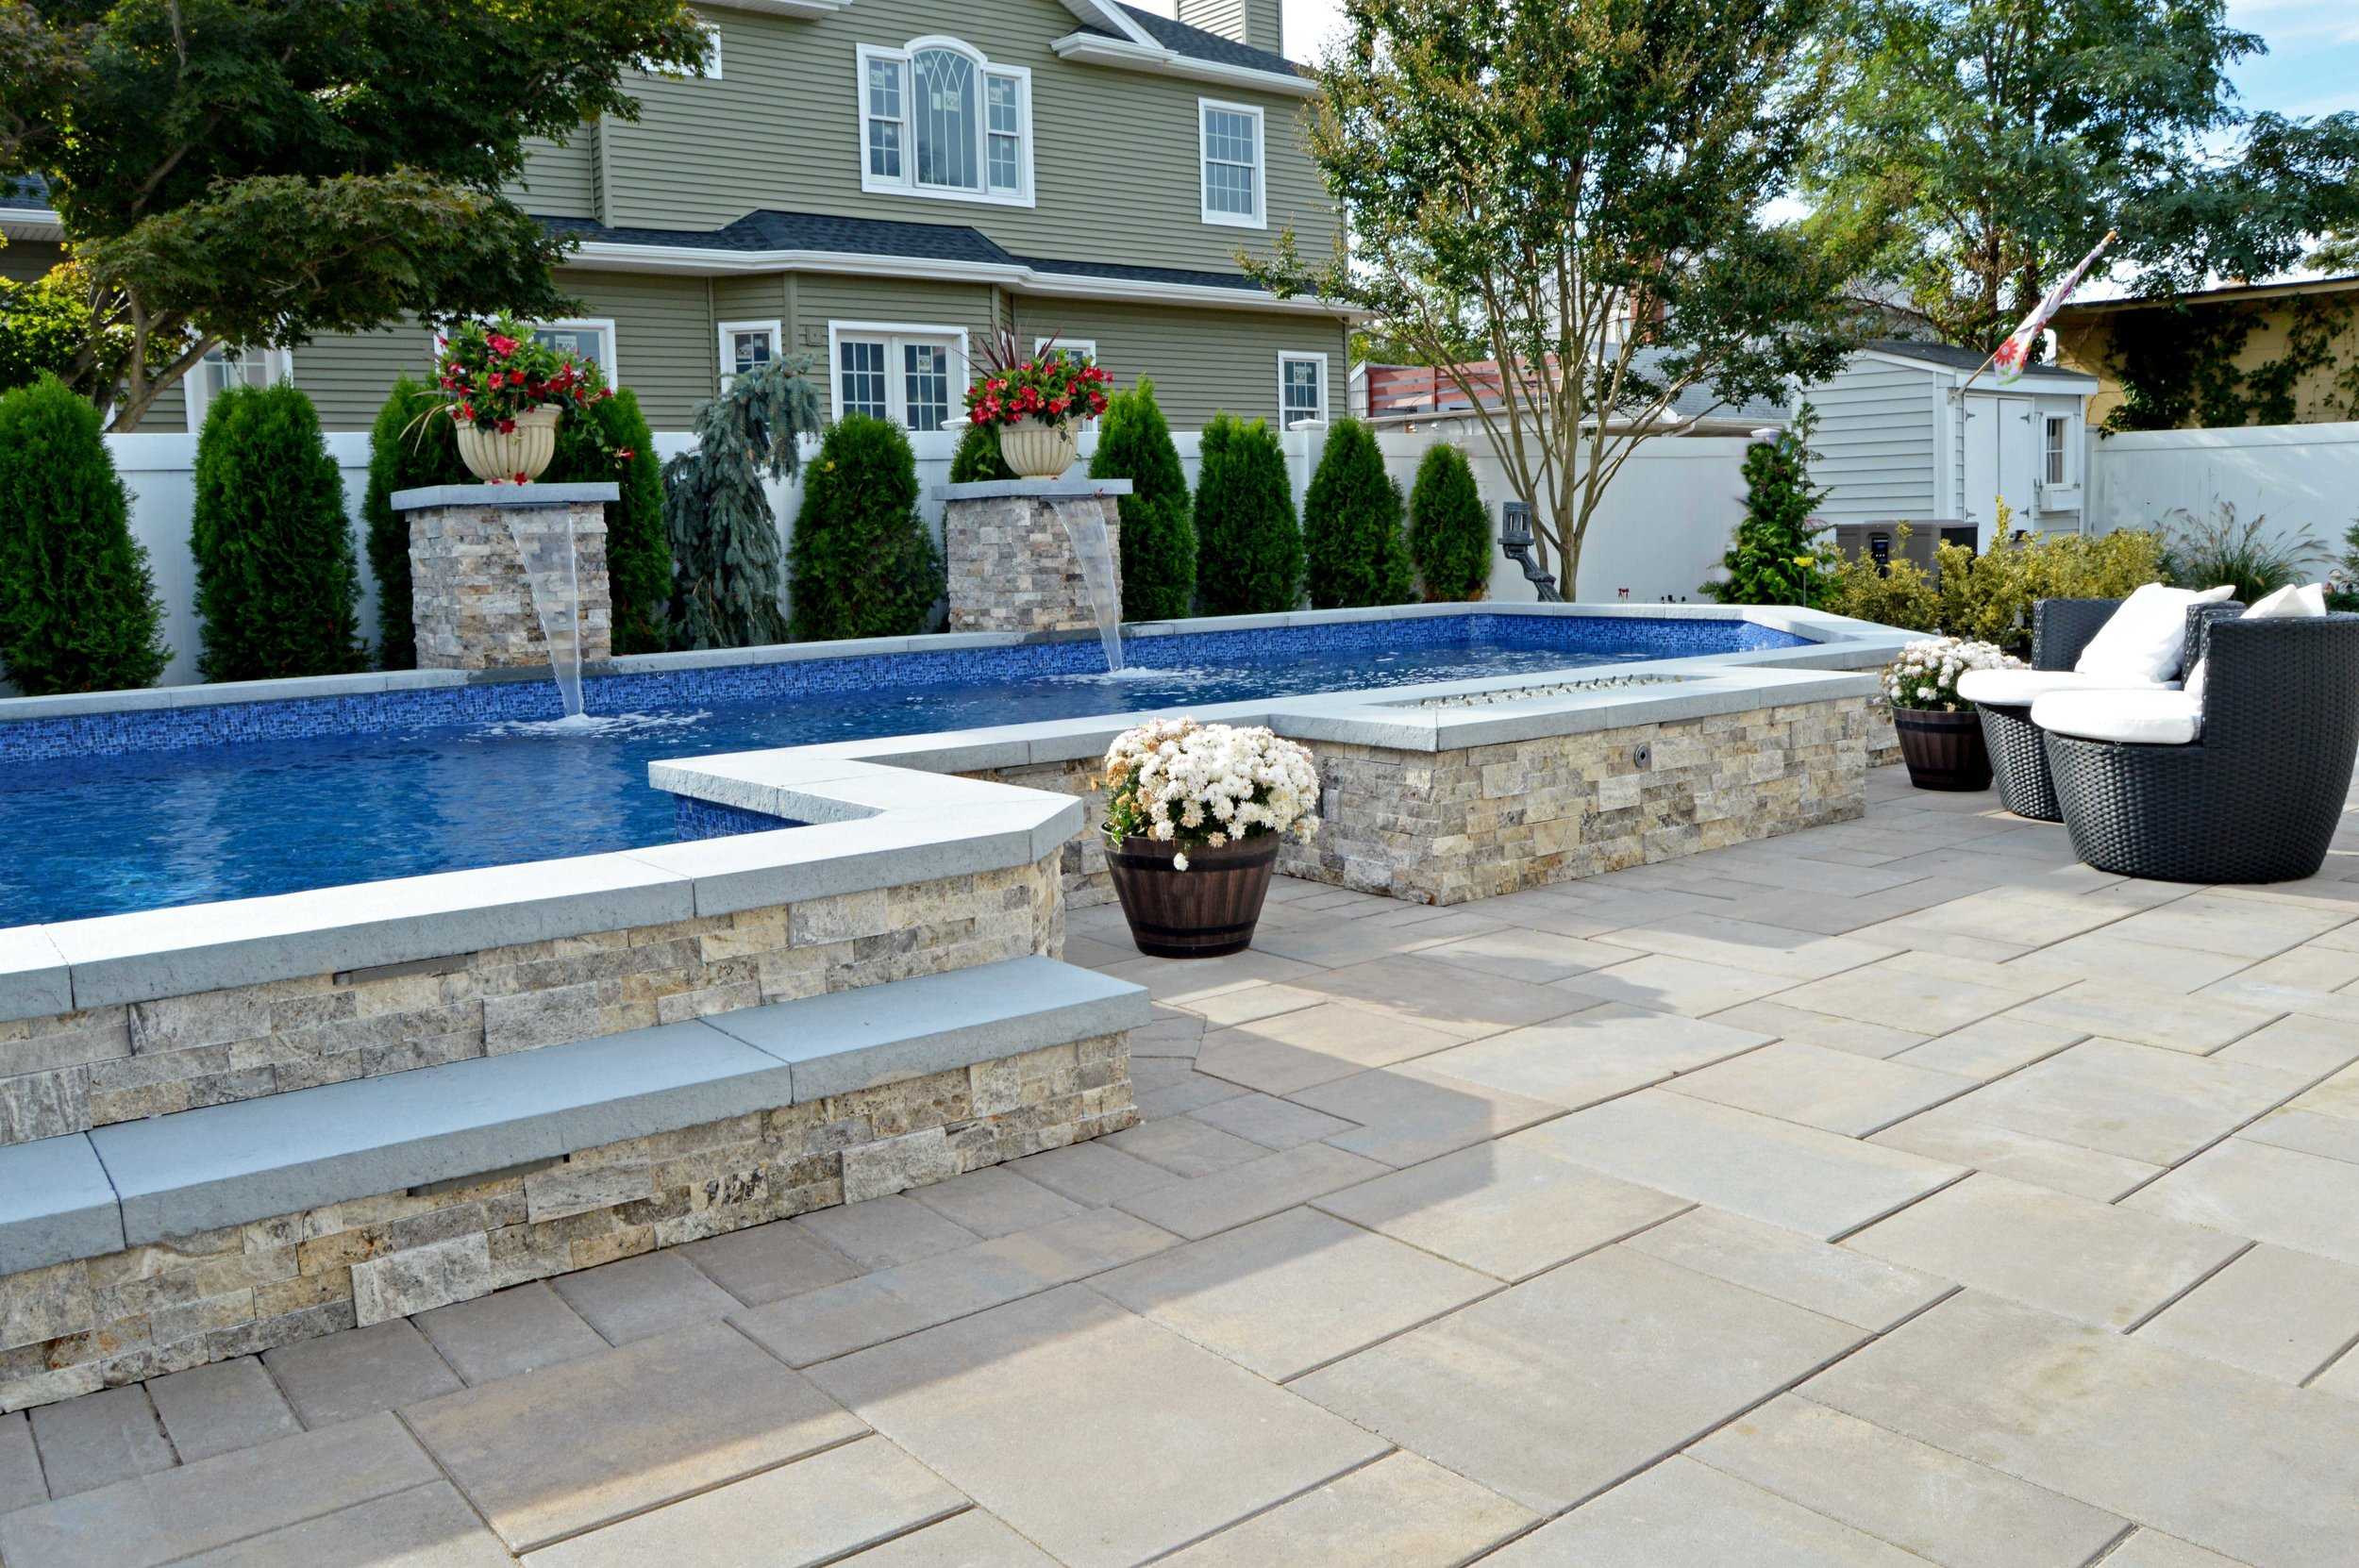 Swimming pool design with landscape lighting in Melville, New York